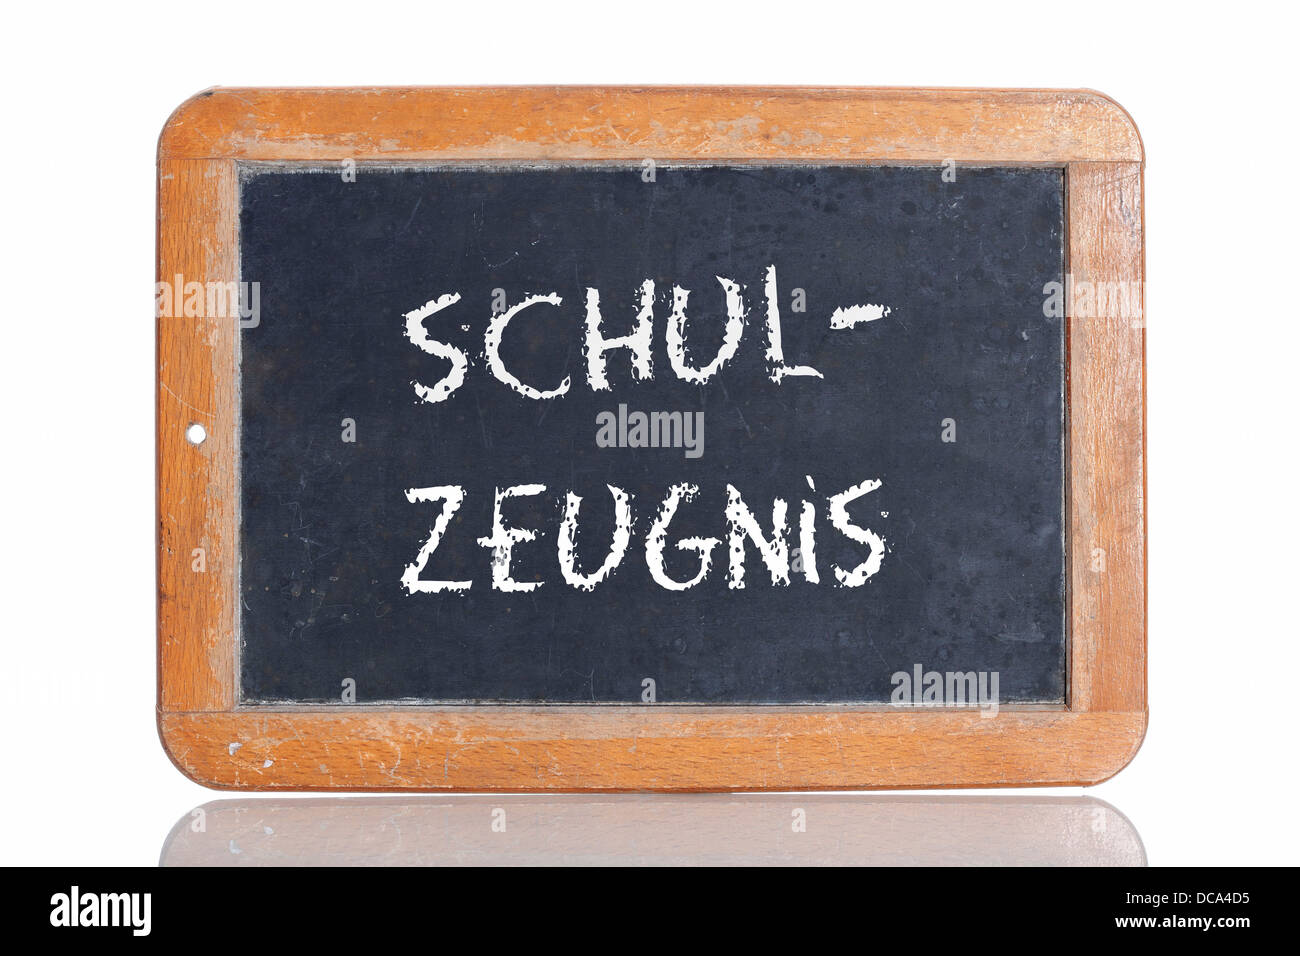 Zeugnis stock photos zeugnis stock images alamy old slate blackboard with the word schul zeugnis german for school spiritdancerdesigns Gallery